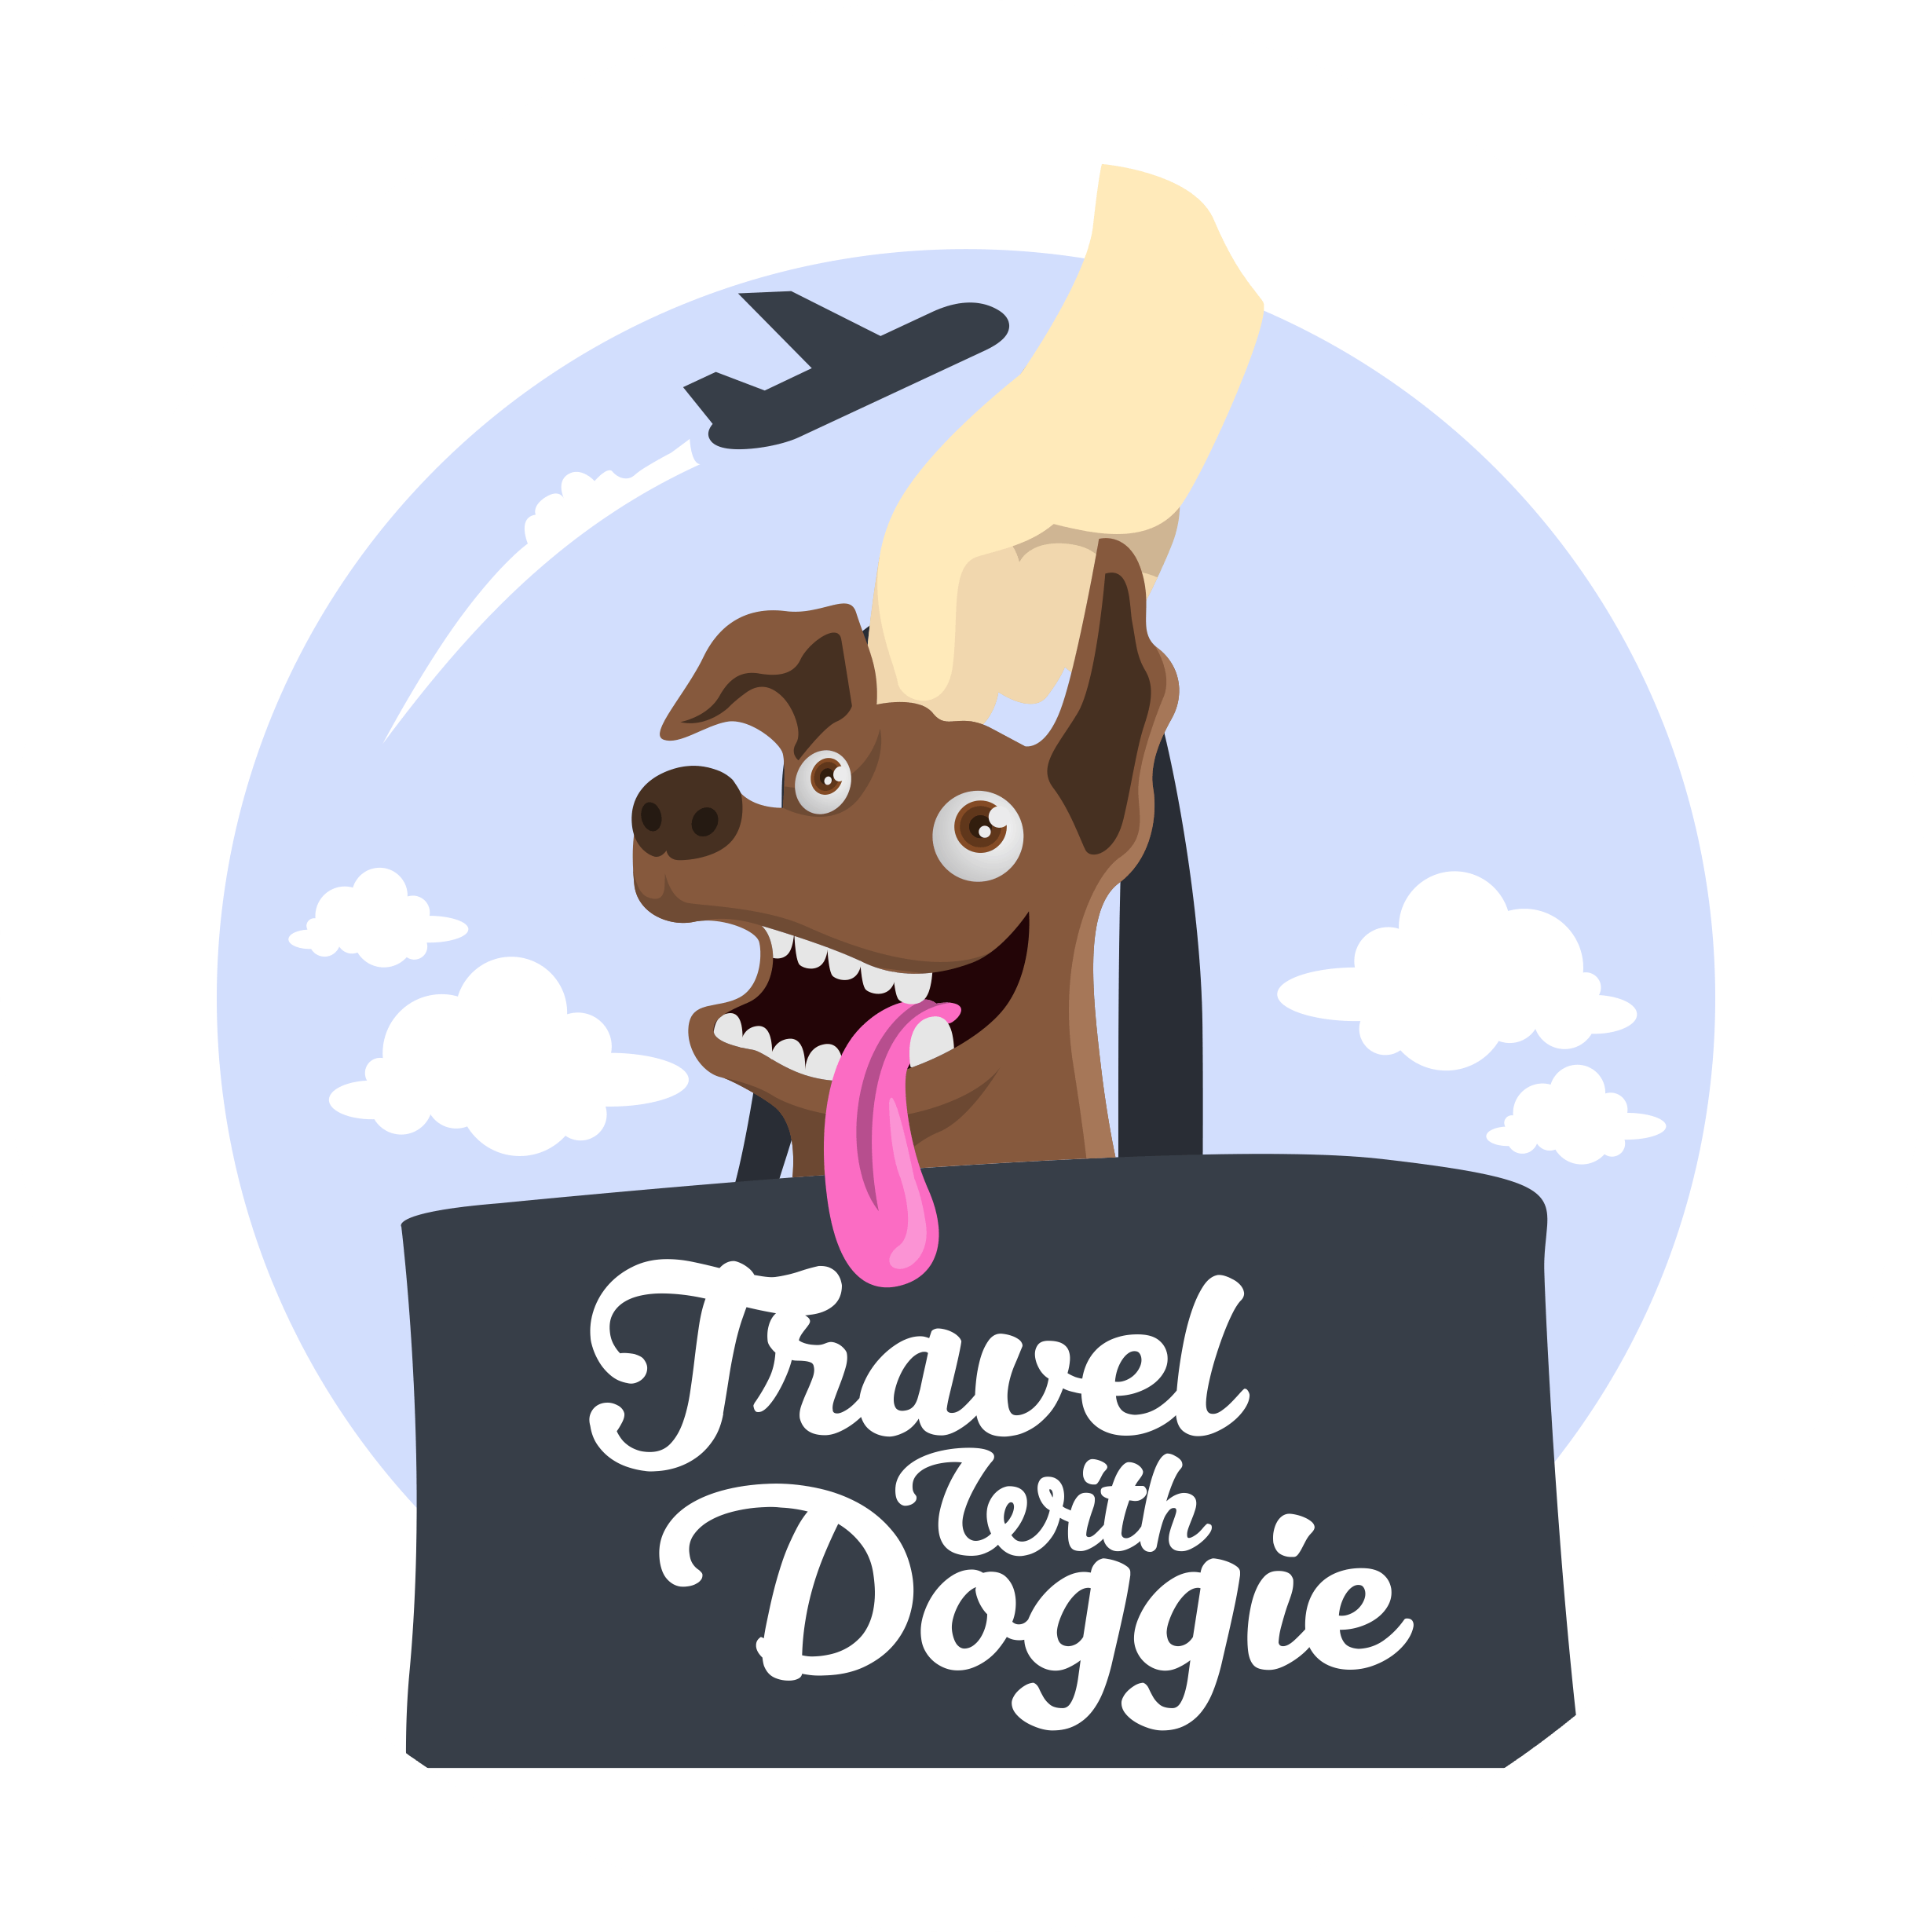 Travel With Doggie